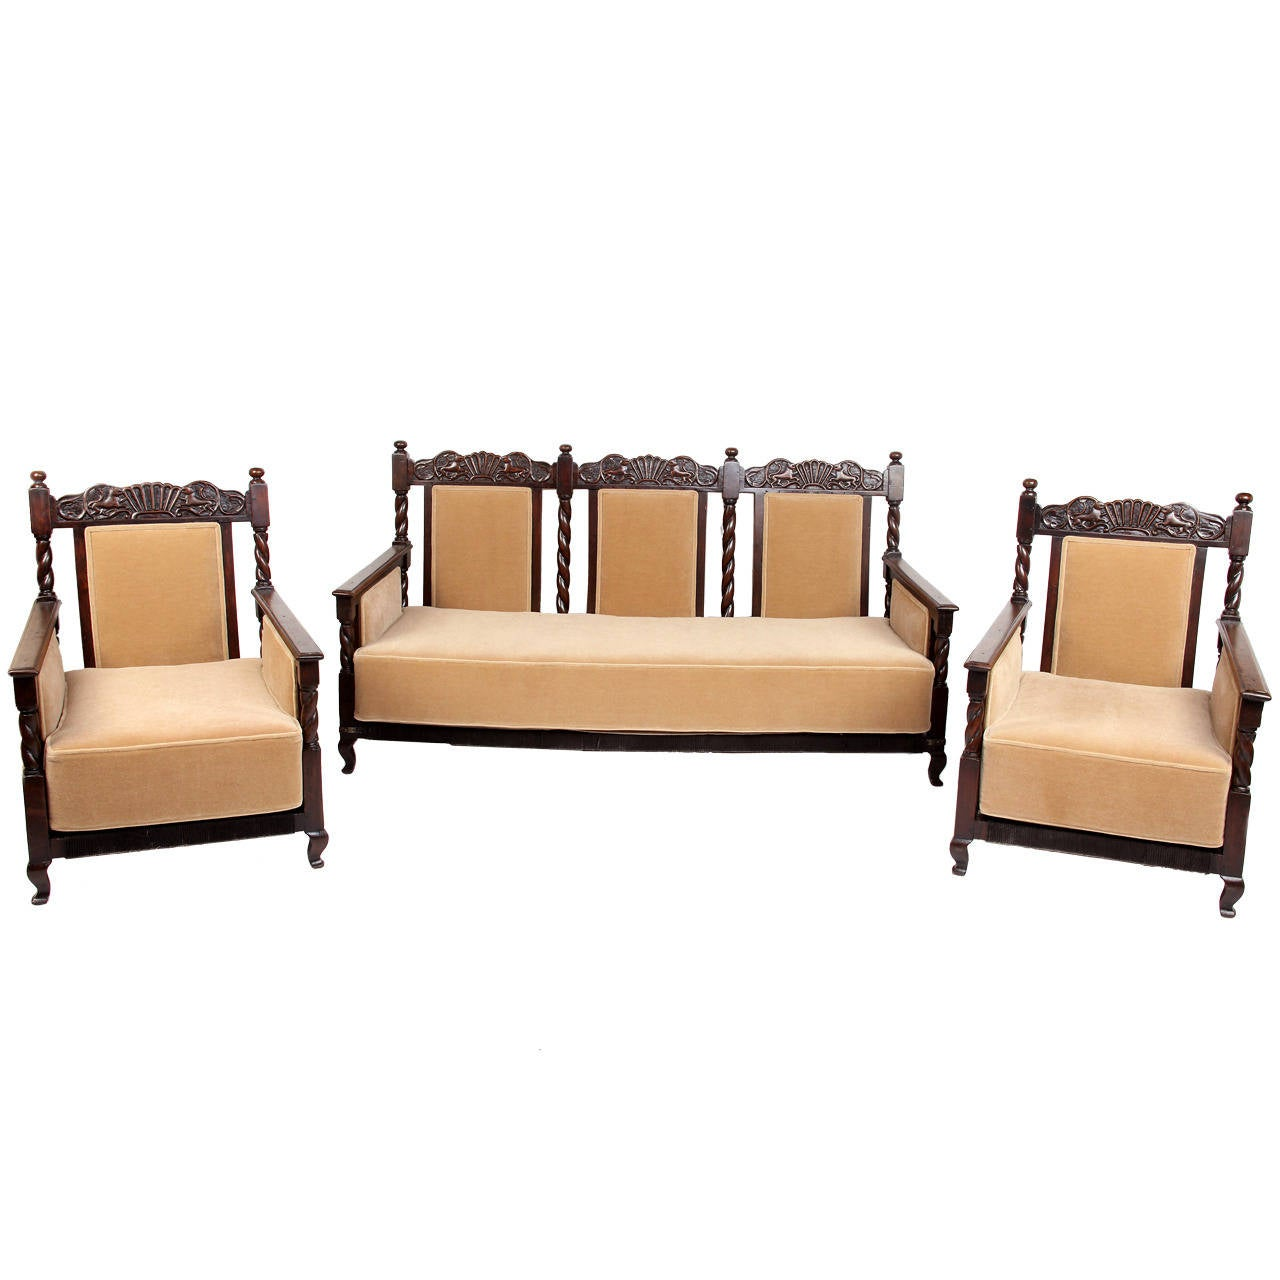 3 piece british colonial living room suite at 1stdibs for Living room suites for sale